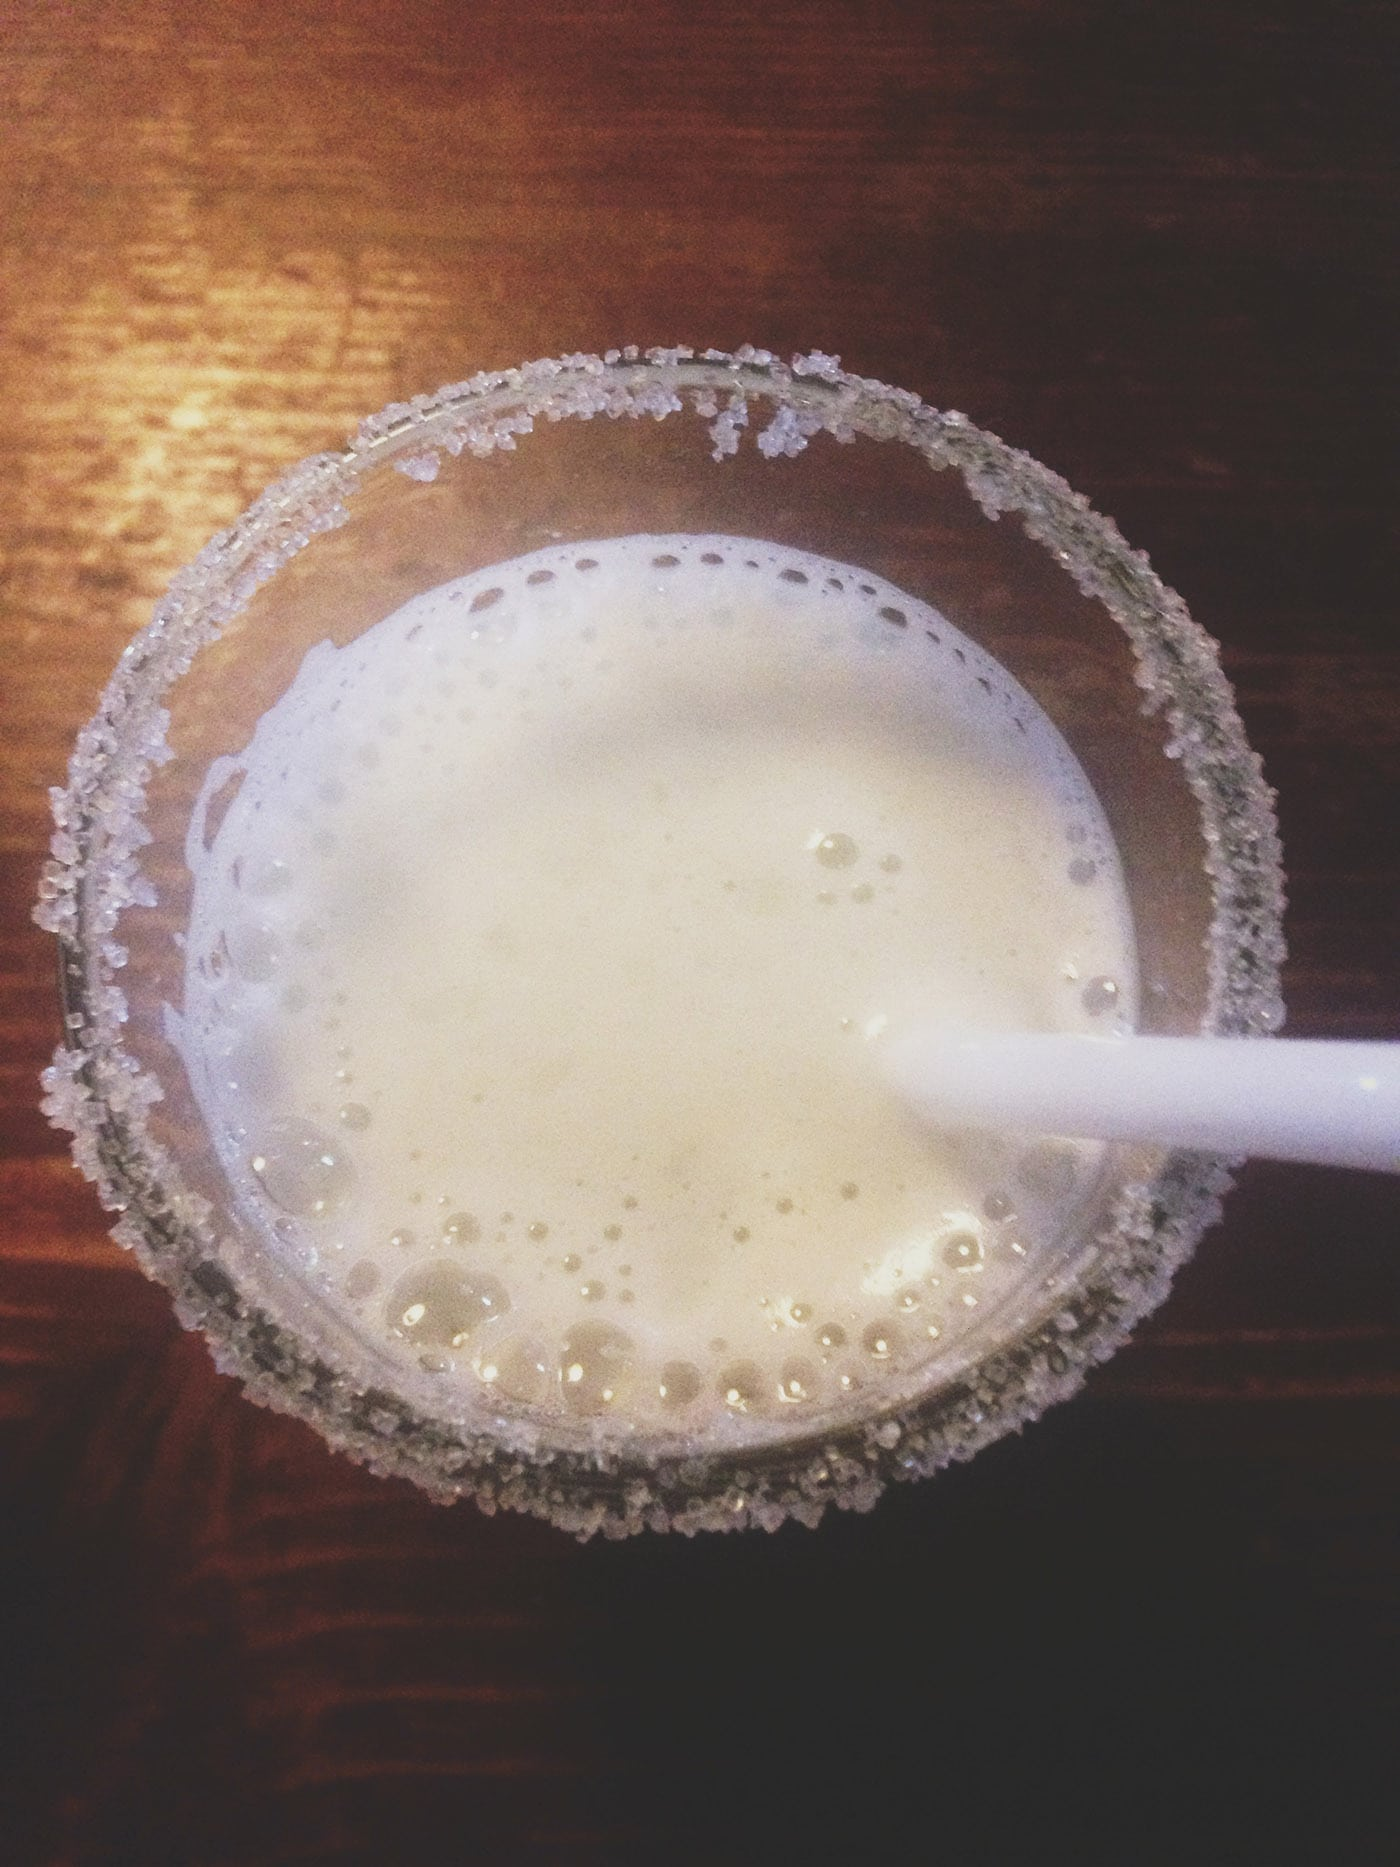 Pisco sour in Cusco, Peru